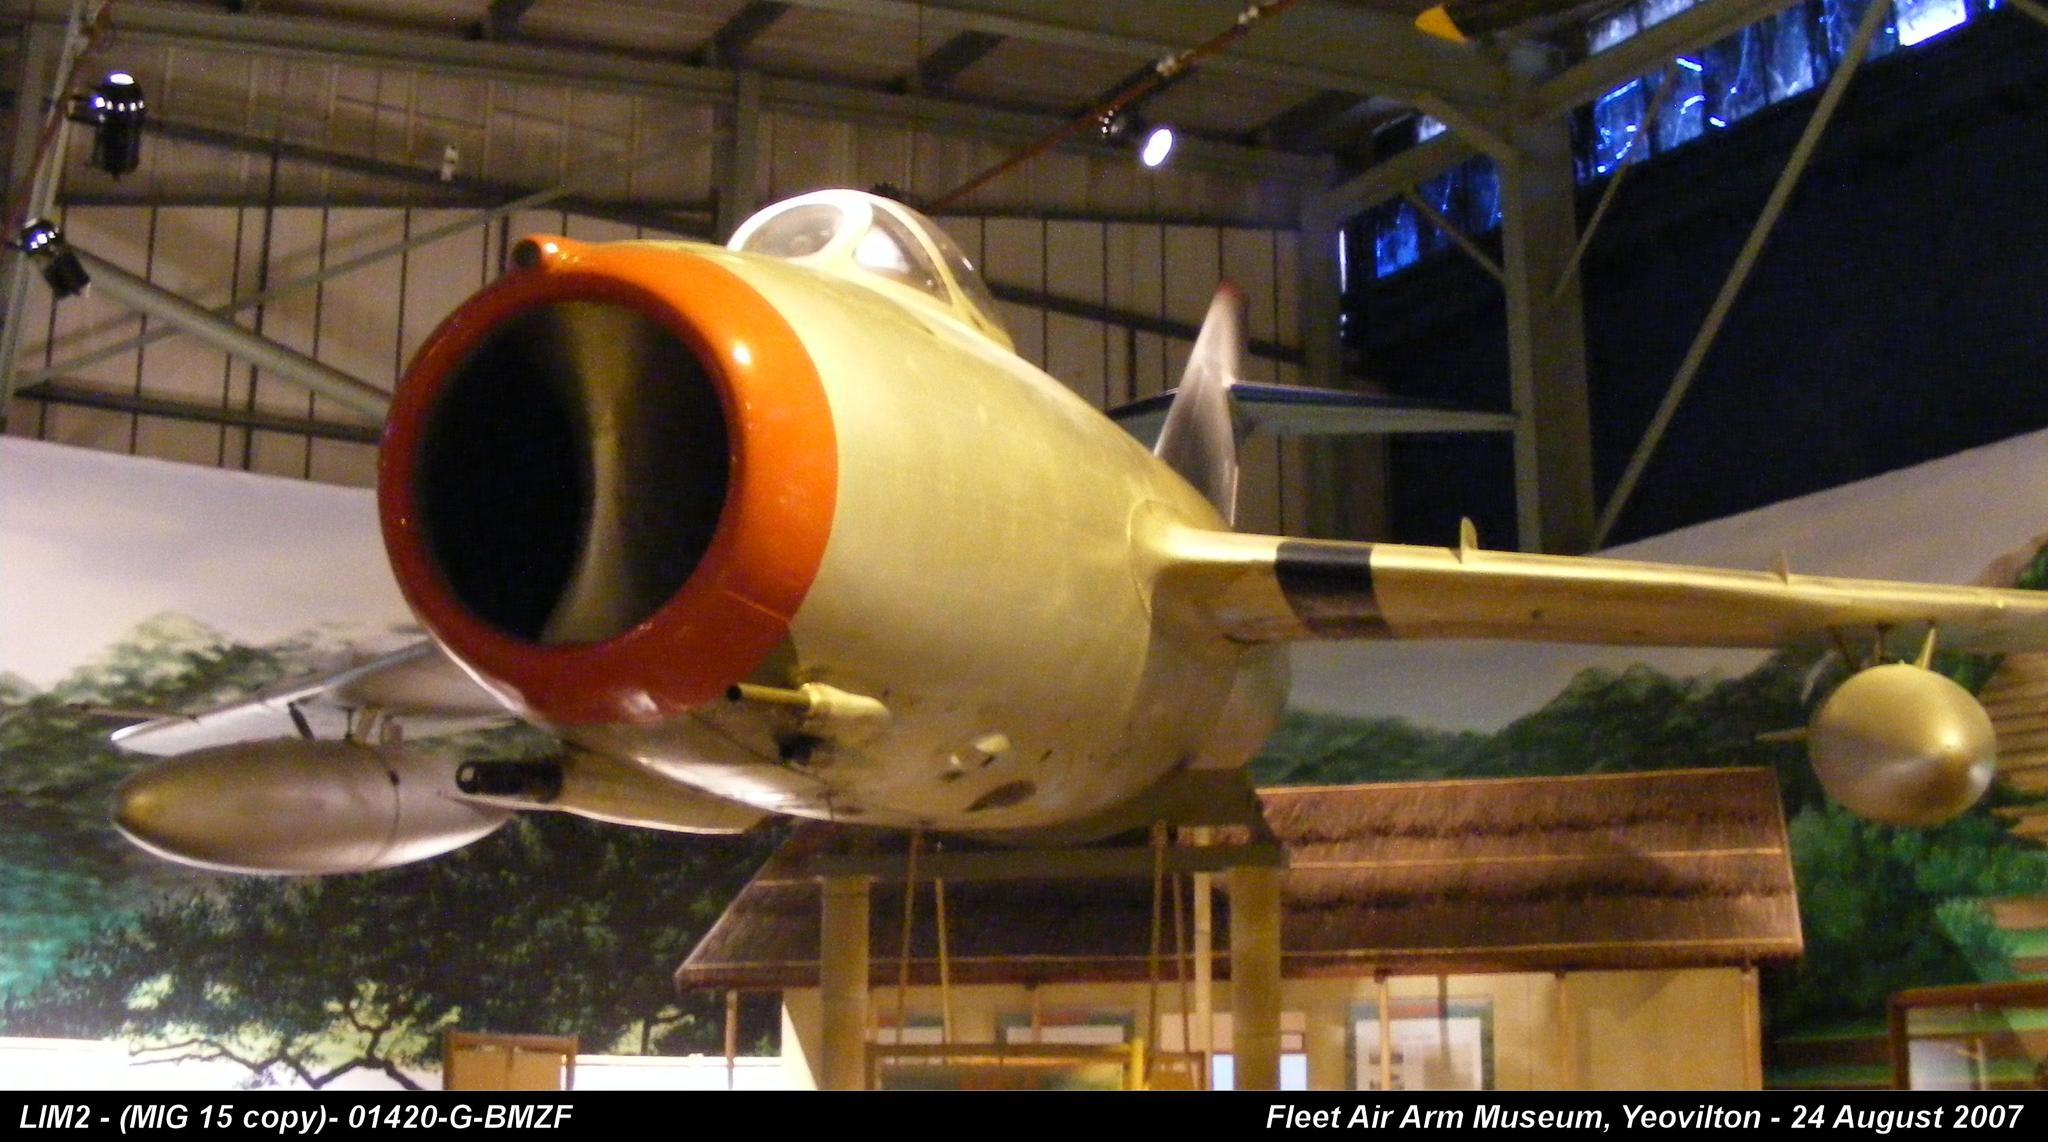 LIM2 - (MIG 15 copy)- 01420 by Graham Wood Photo Collection